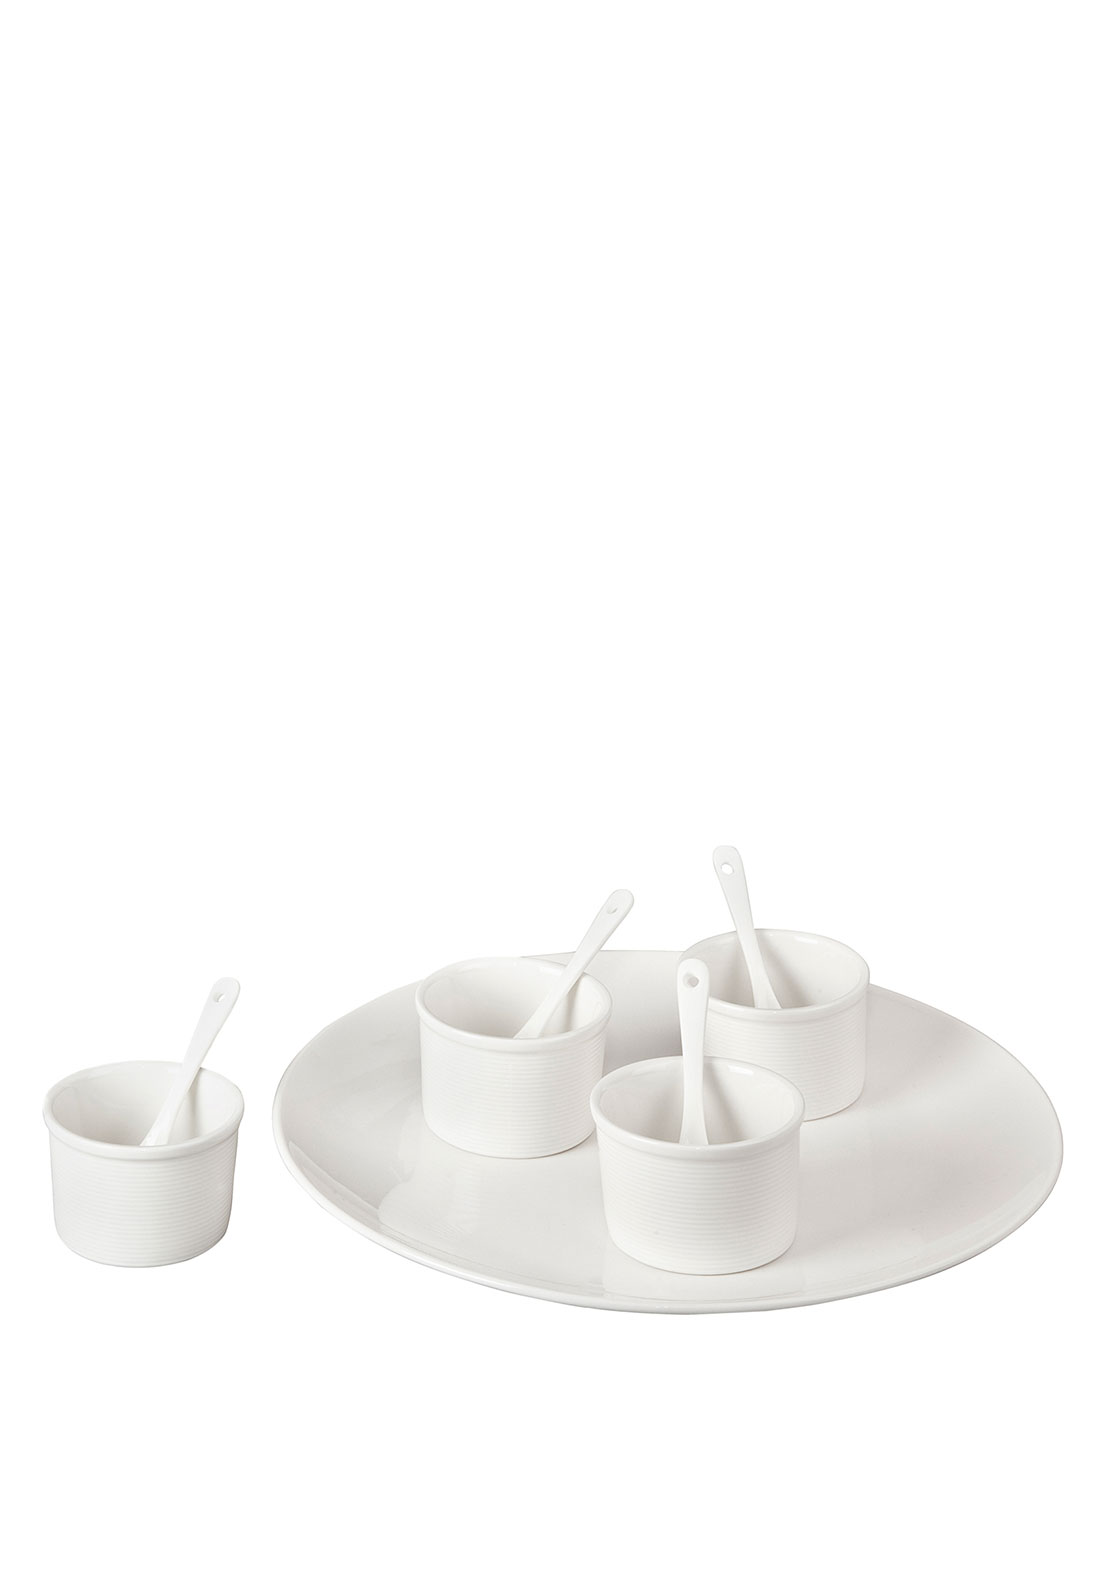 Denby Gastro James Martin 9 Piece Gastro Serving Kit